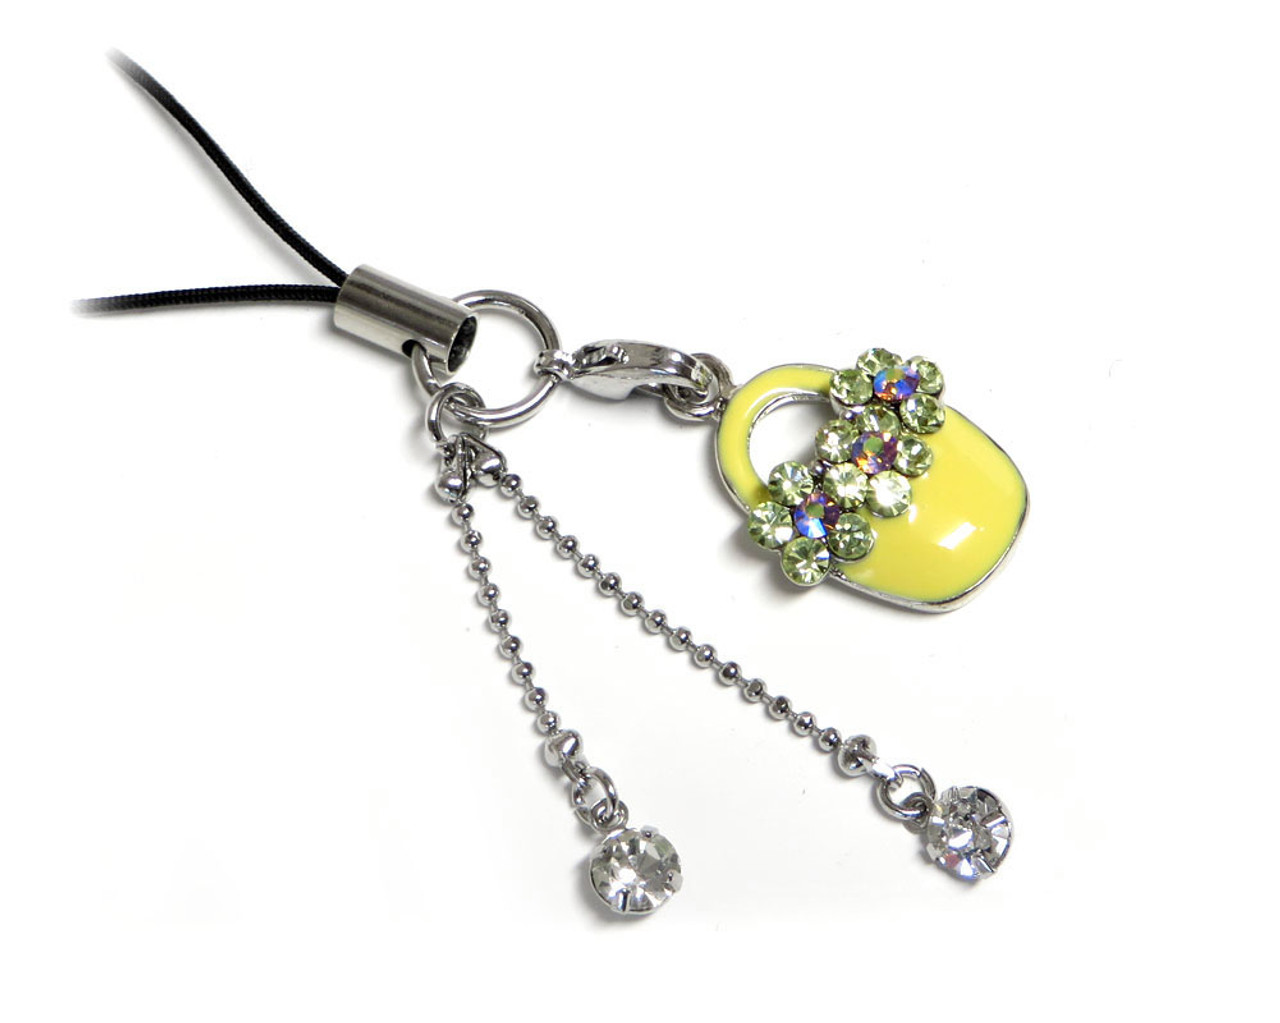 Cell Phone Gems Charms Lanyard Accessory 6005 In Yellow